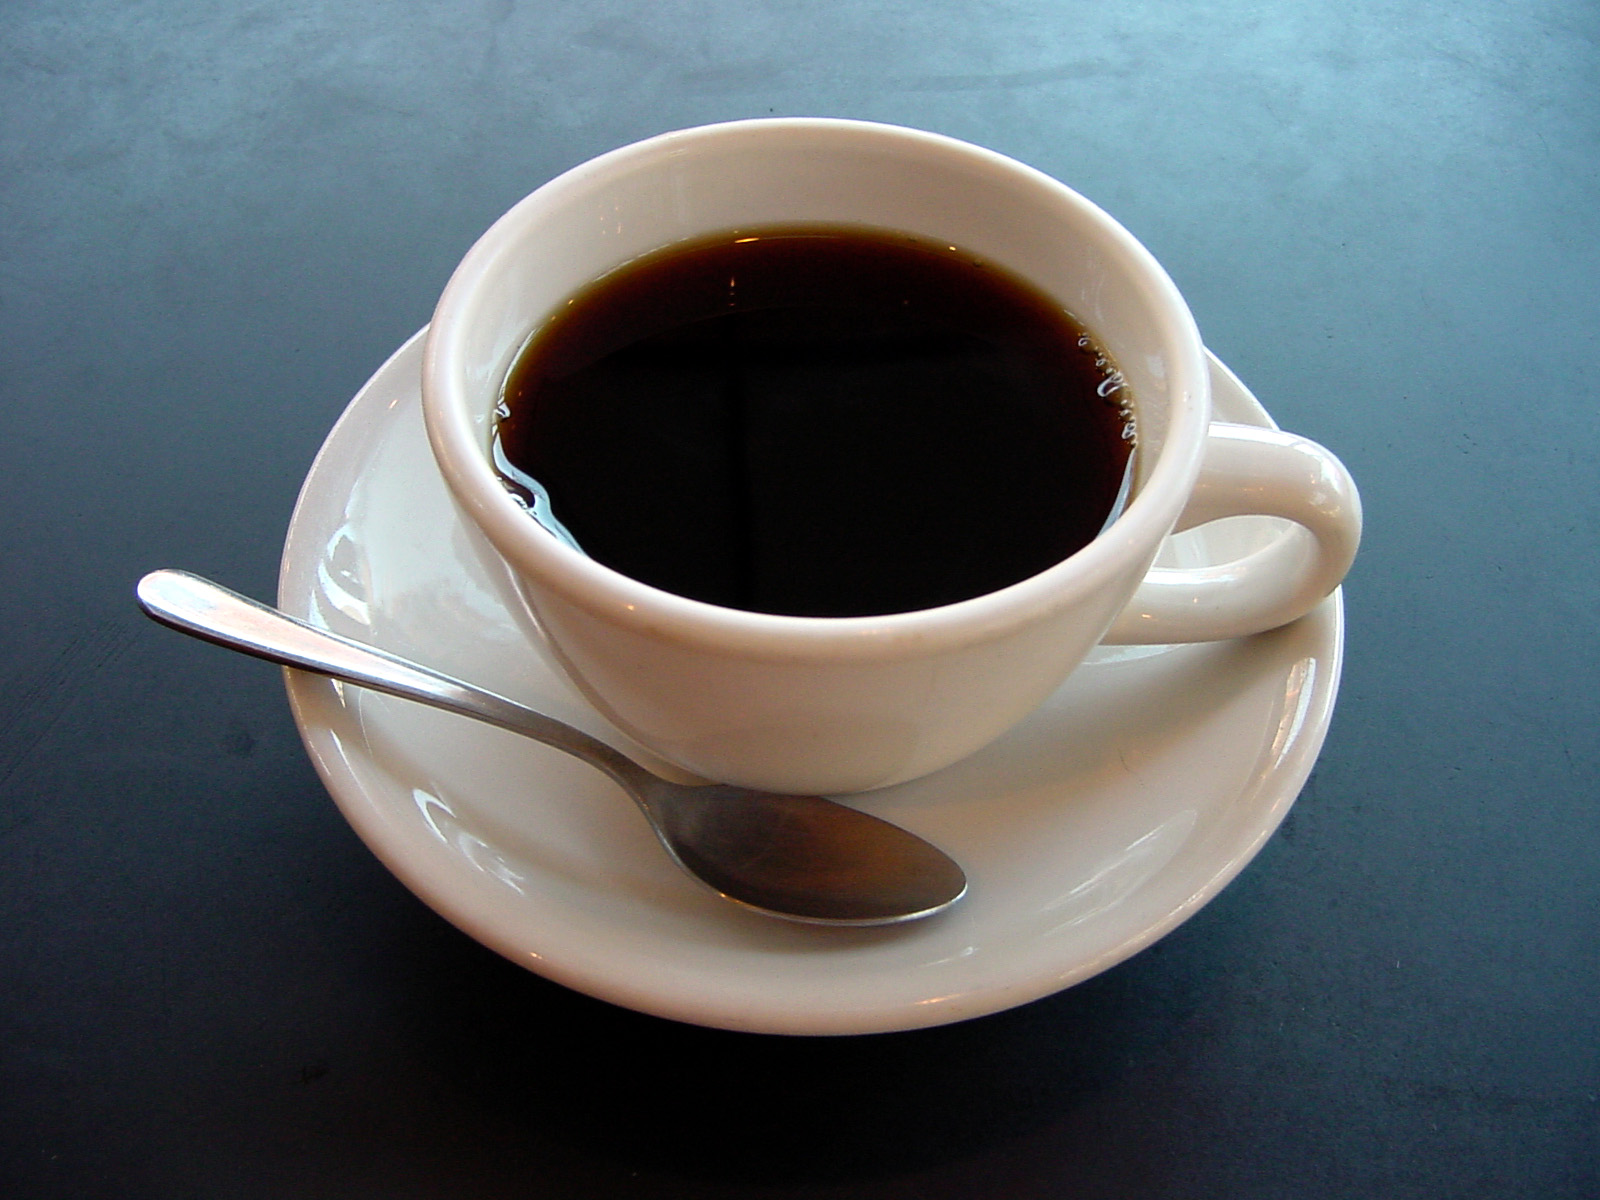 cold cup of coffee